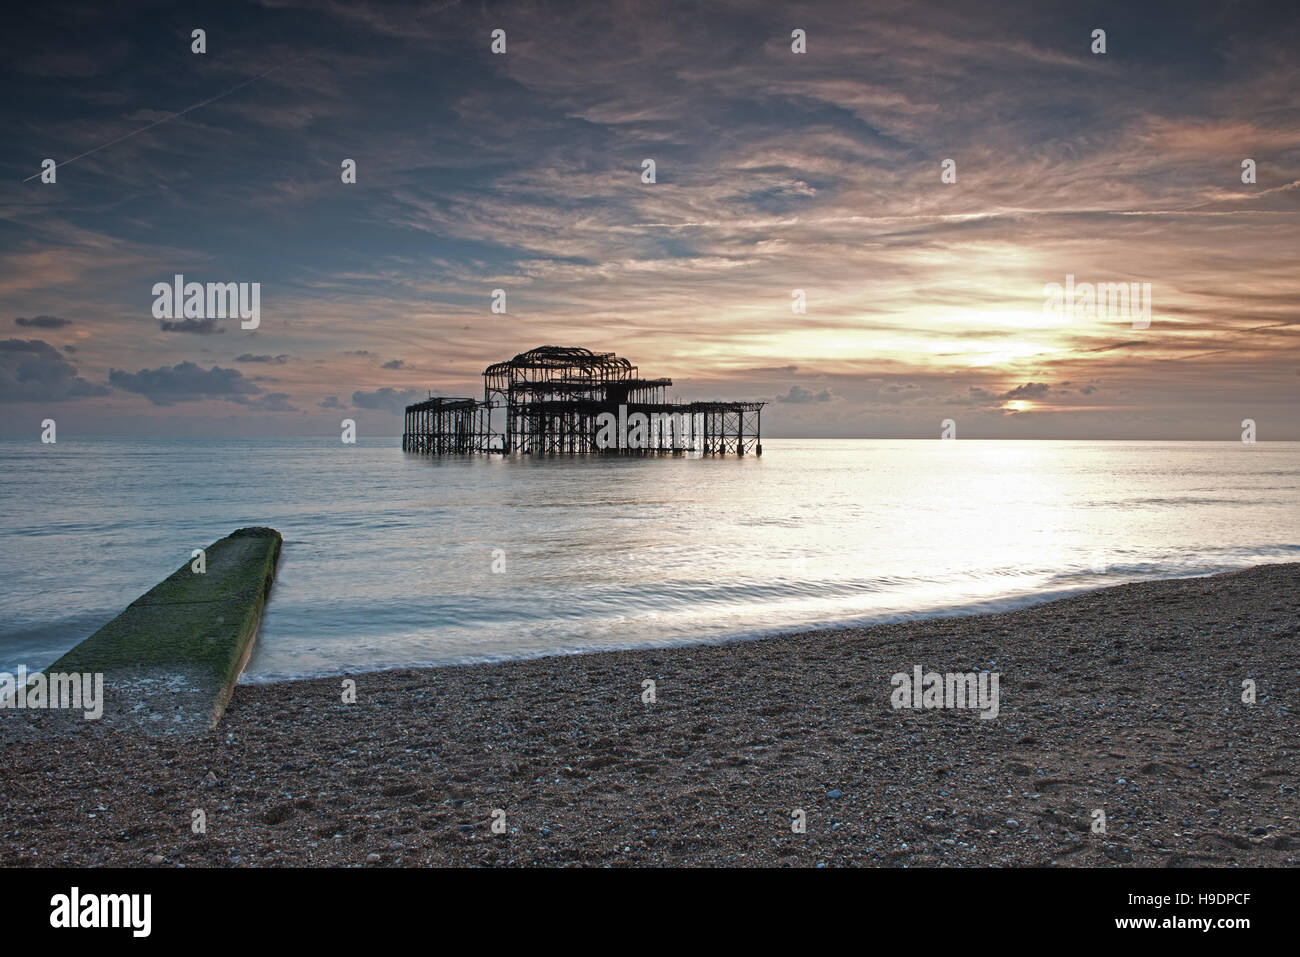 Reste der West Pier bei Sonnenuntergang, Brighton, East Sussex, England, Uk, Gb Stockbild